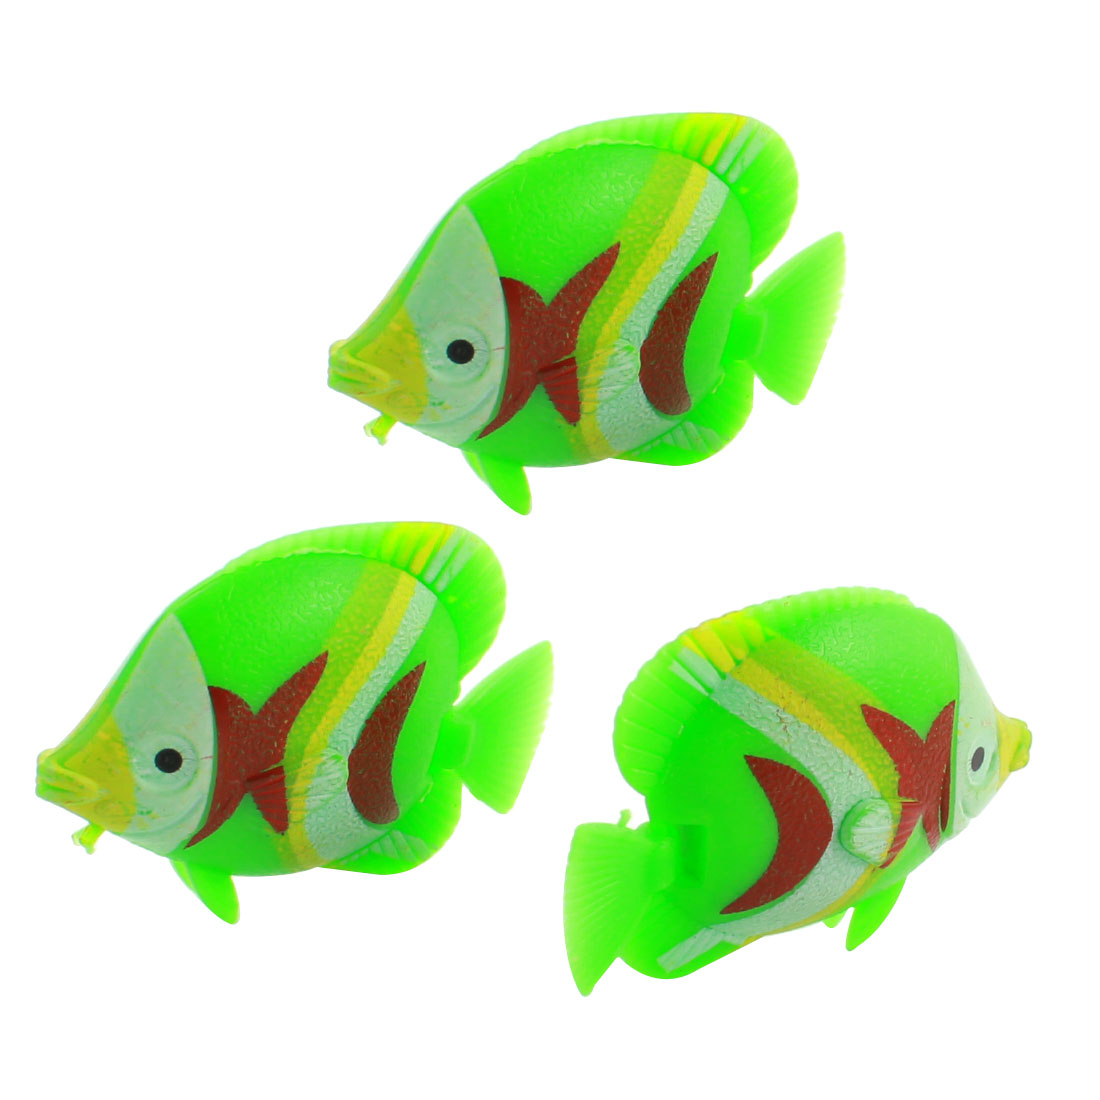 3 Pcs Aquarium Manmade Wiggly Tail Swimming Fishes Decor Green Gray